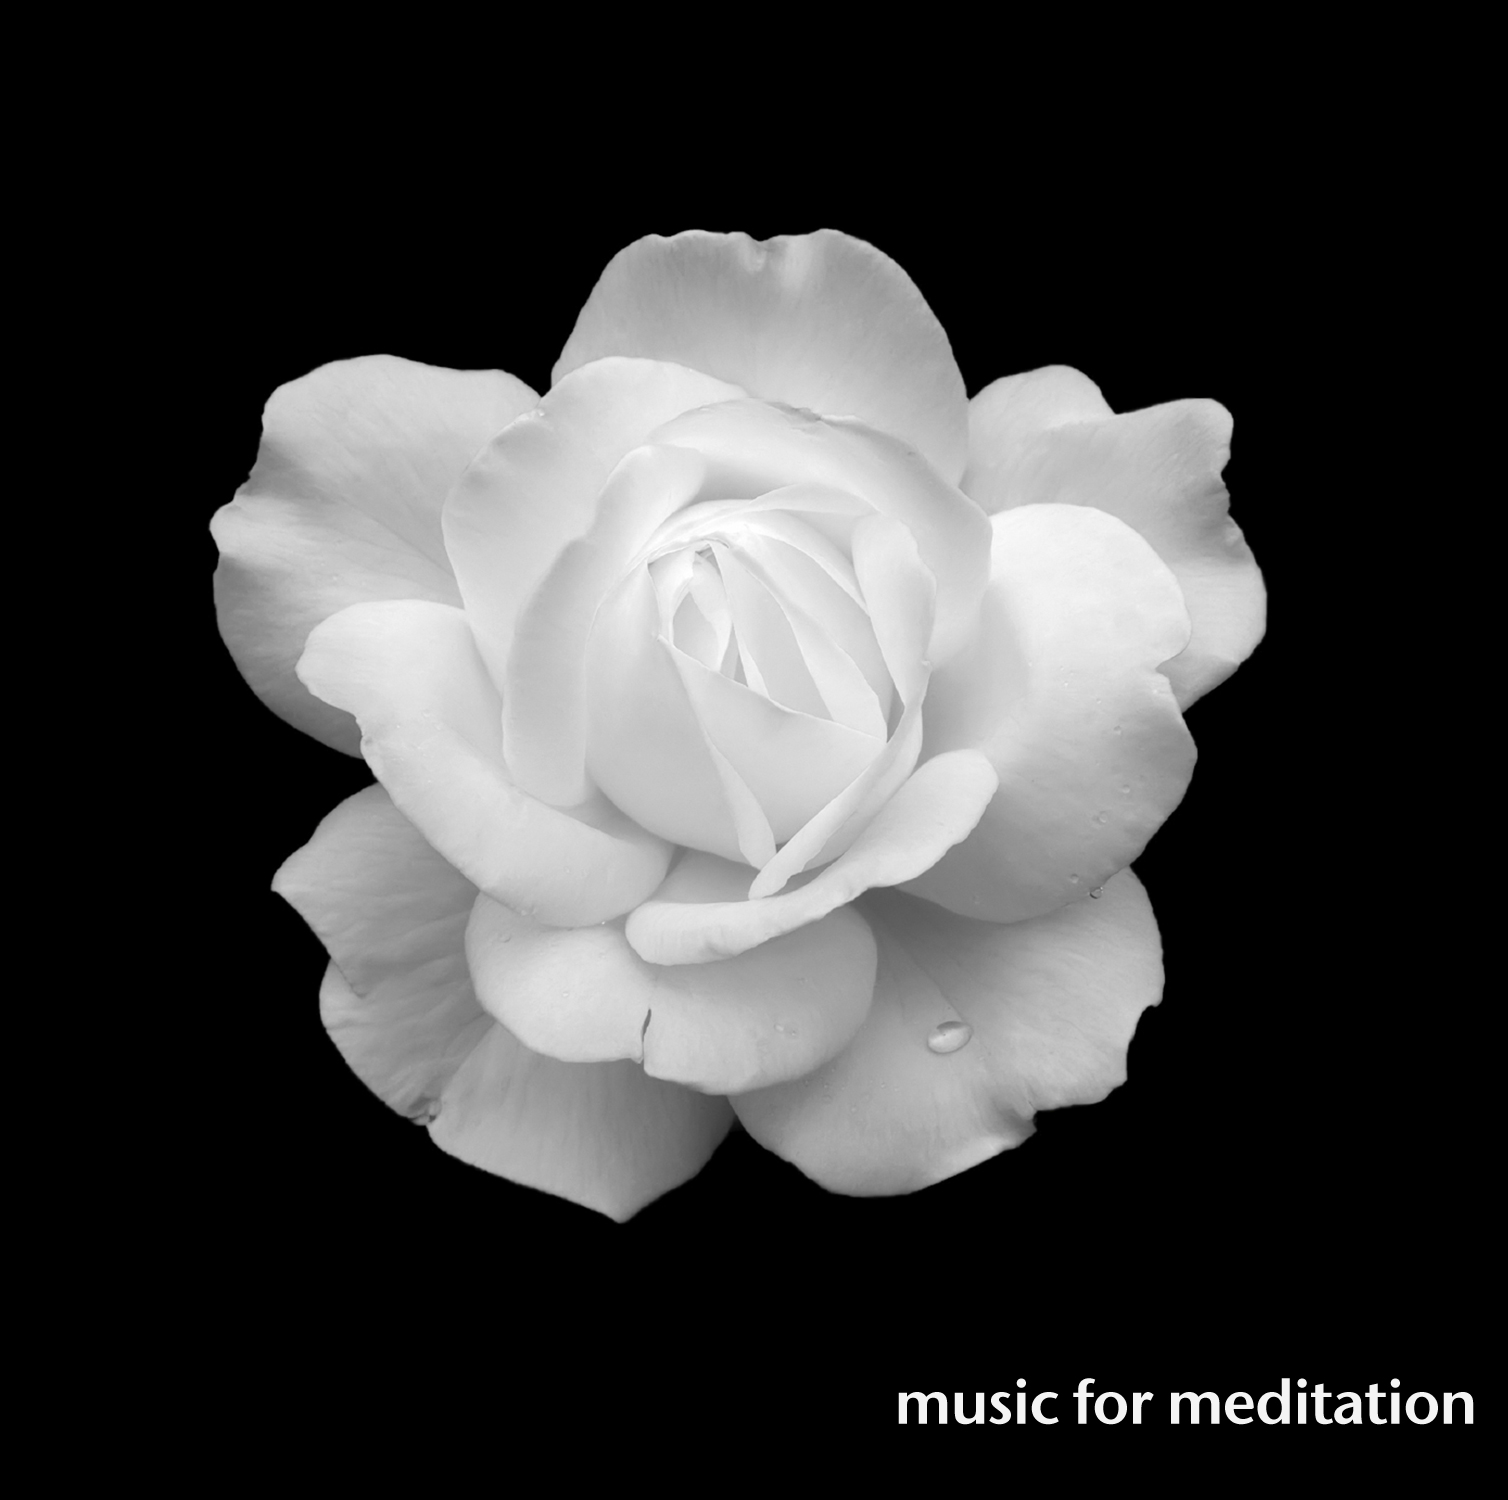 Compilation music for meditation the best music from magnatune songs